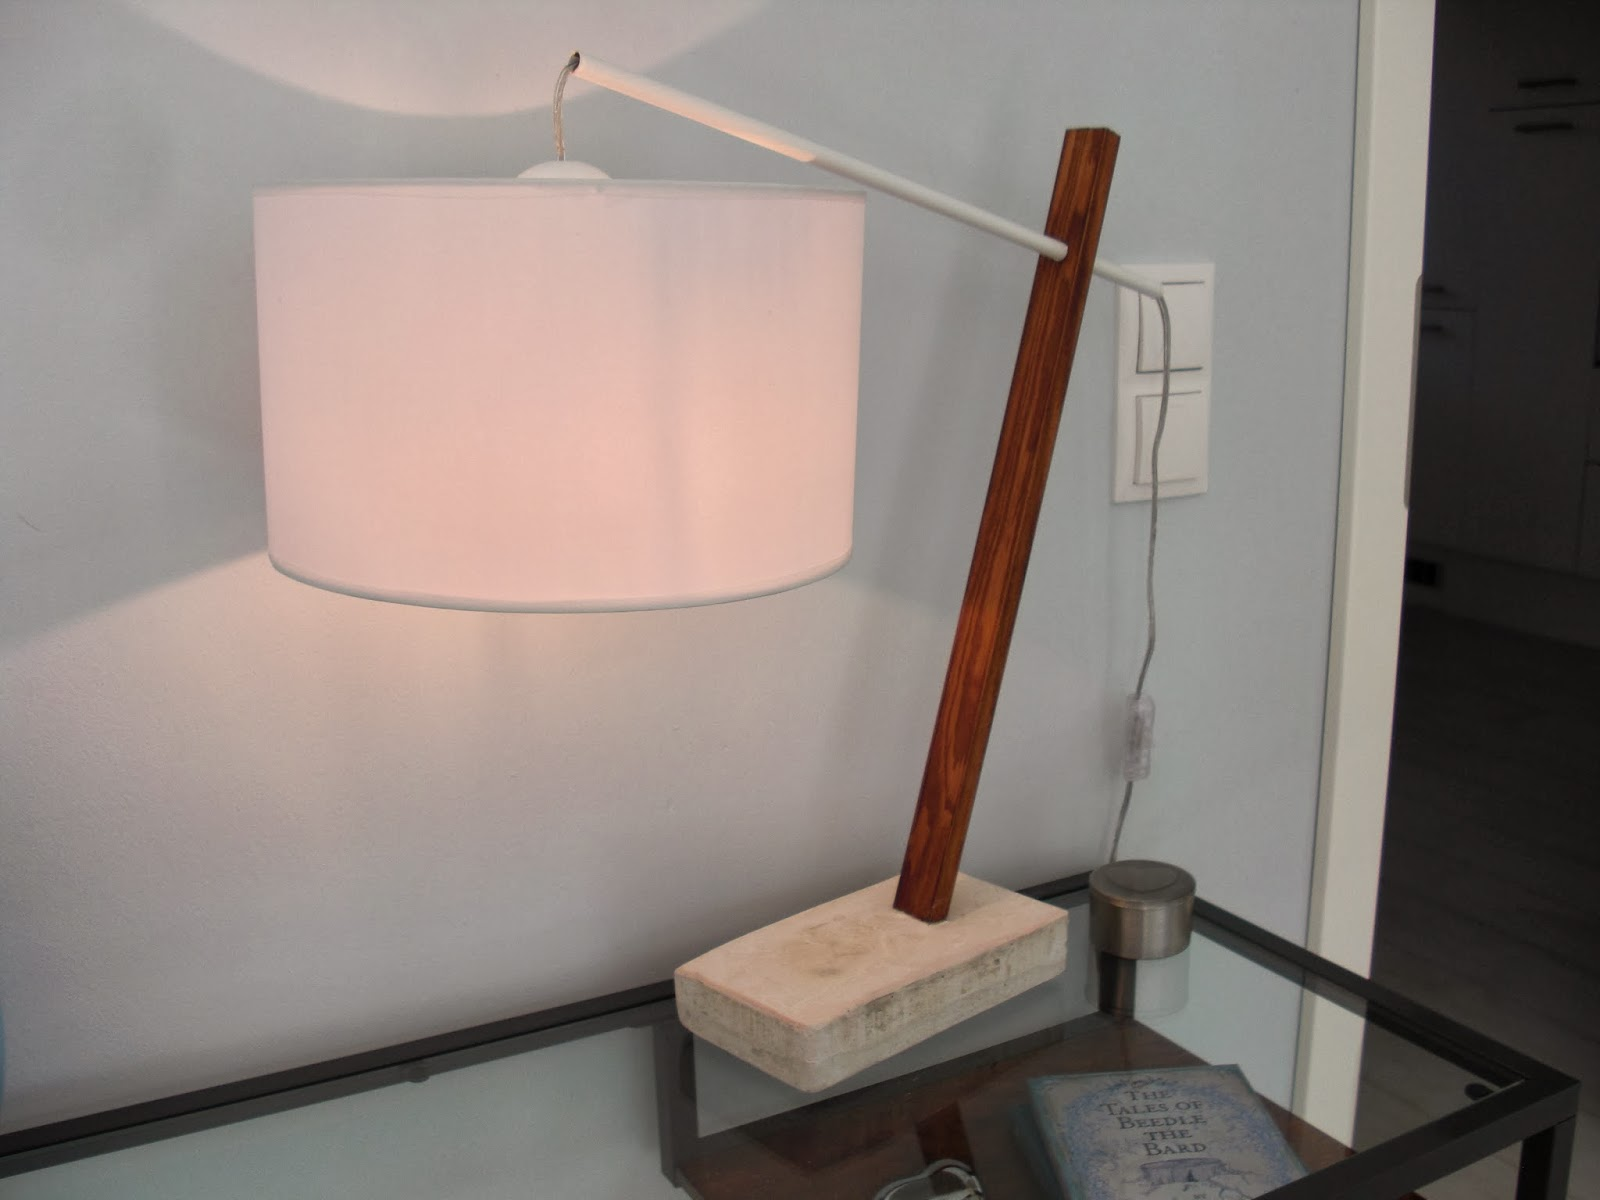 heim-elich: DIY Tischlampe mit Zement Fu / DIY table lamp